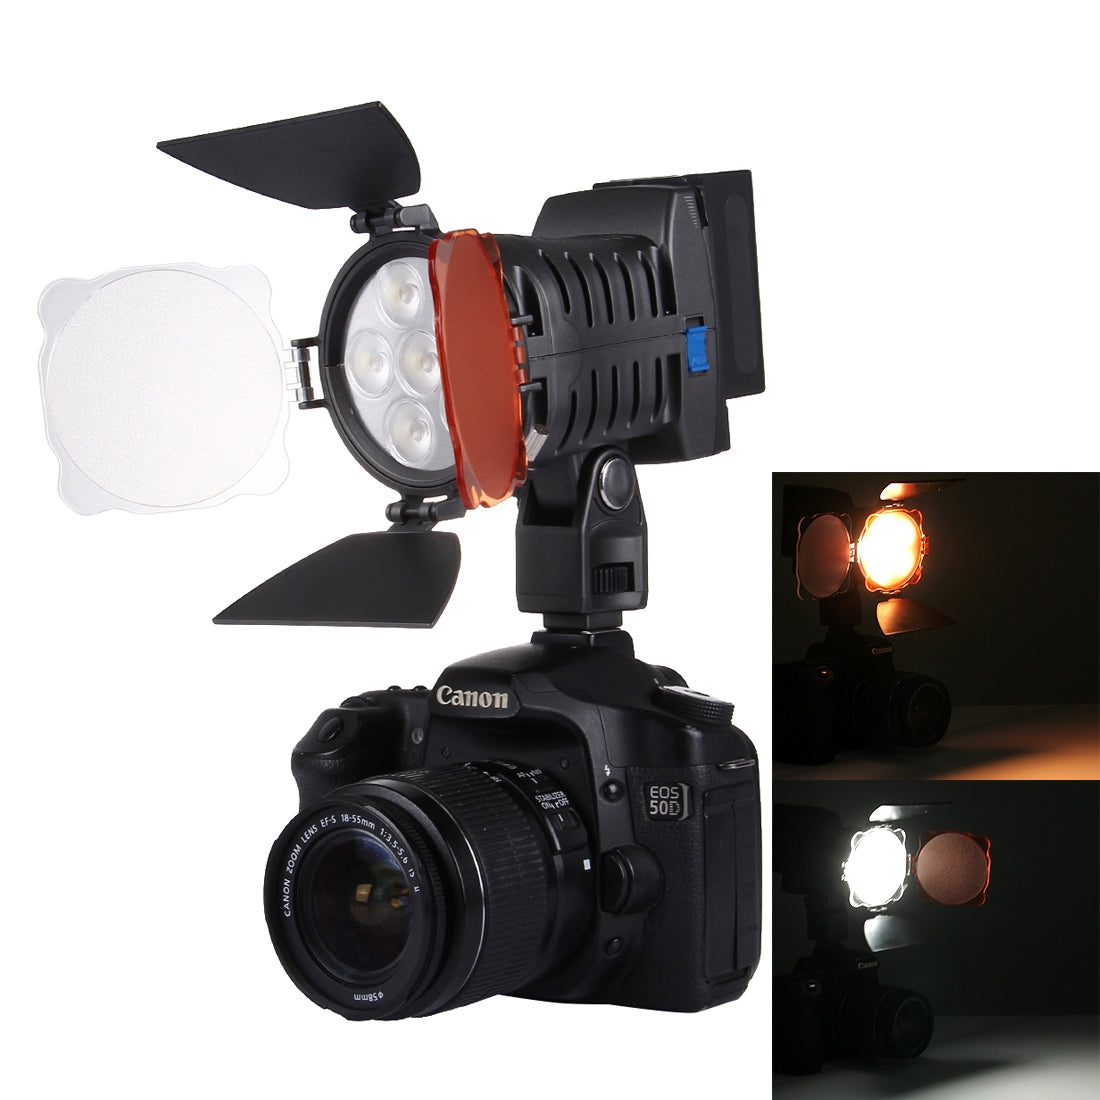 LED-5010 6 LED 750LM Dimmable Video Light on-Camera Photography Lighting Fill Light for Canon, Nikon, DSLR Camera with Hand Grip